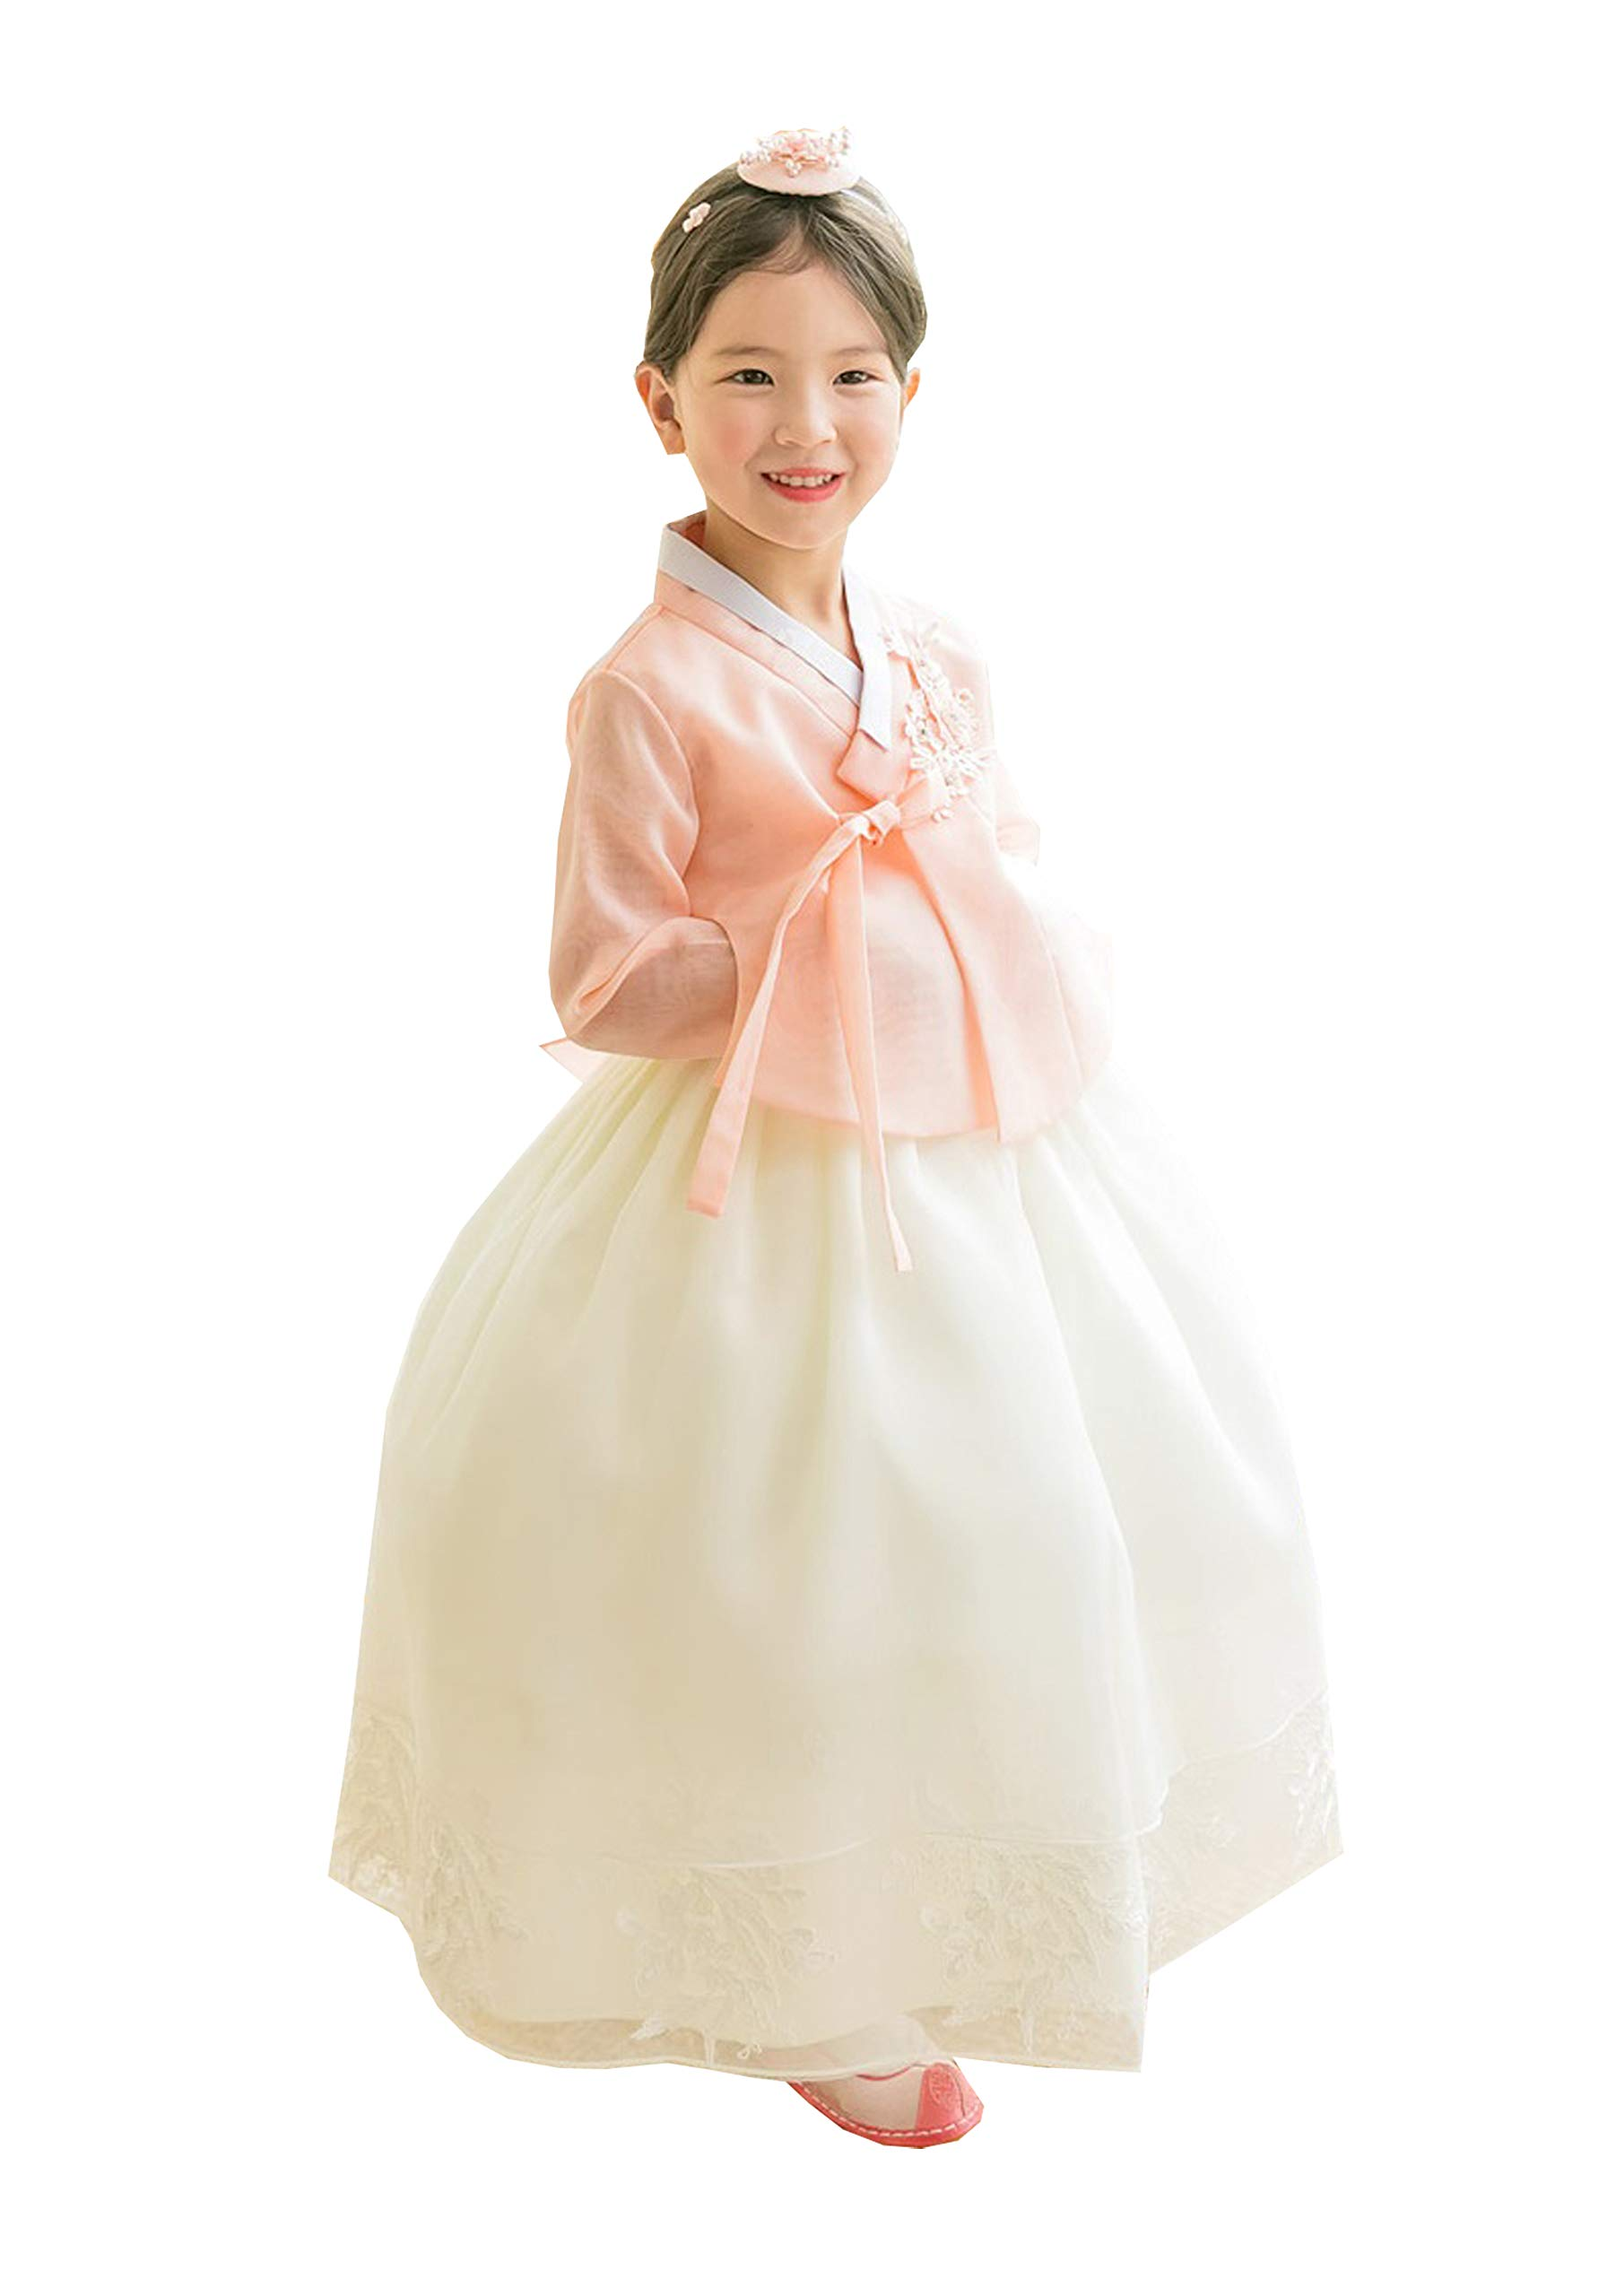 First birthday hanbok dress Korea traditional baby girl clothing Dohl Dolbok 1 age party wedding 6 Items Baby Green Skirt